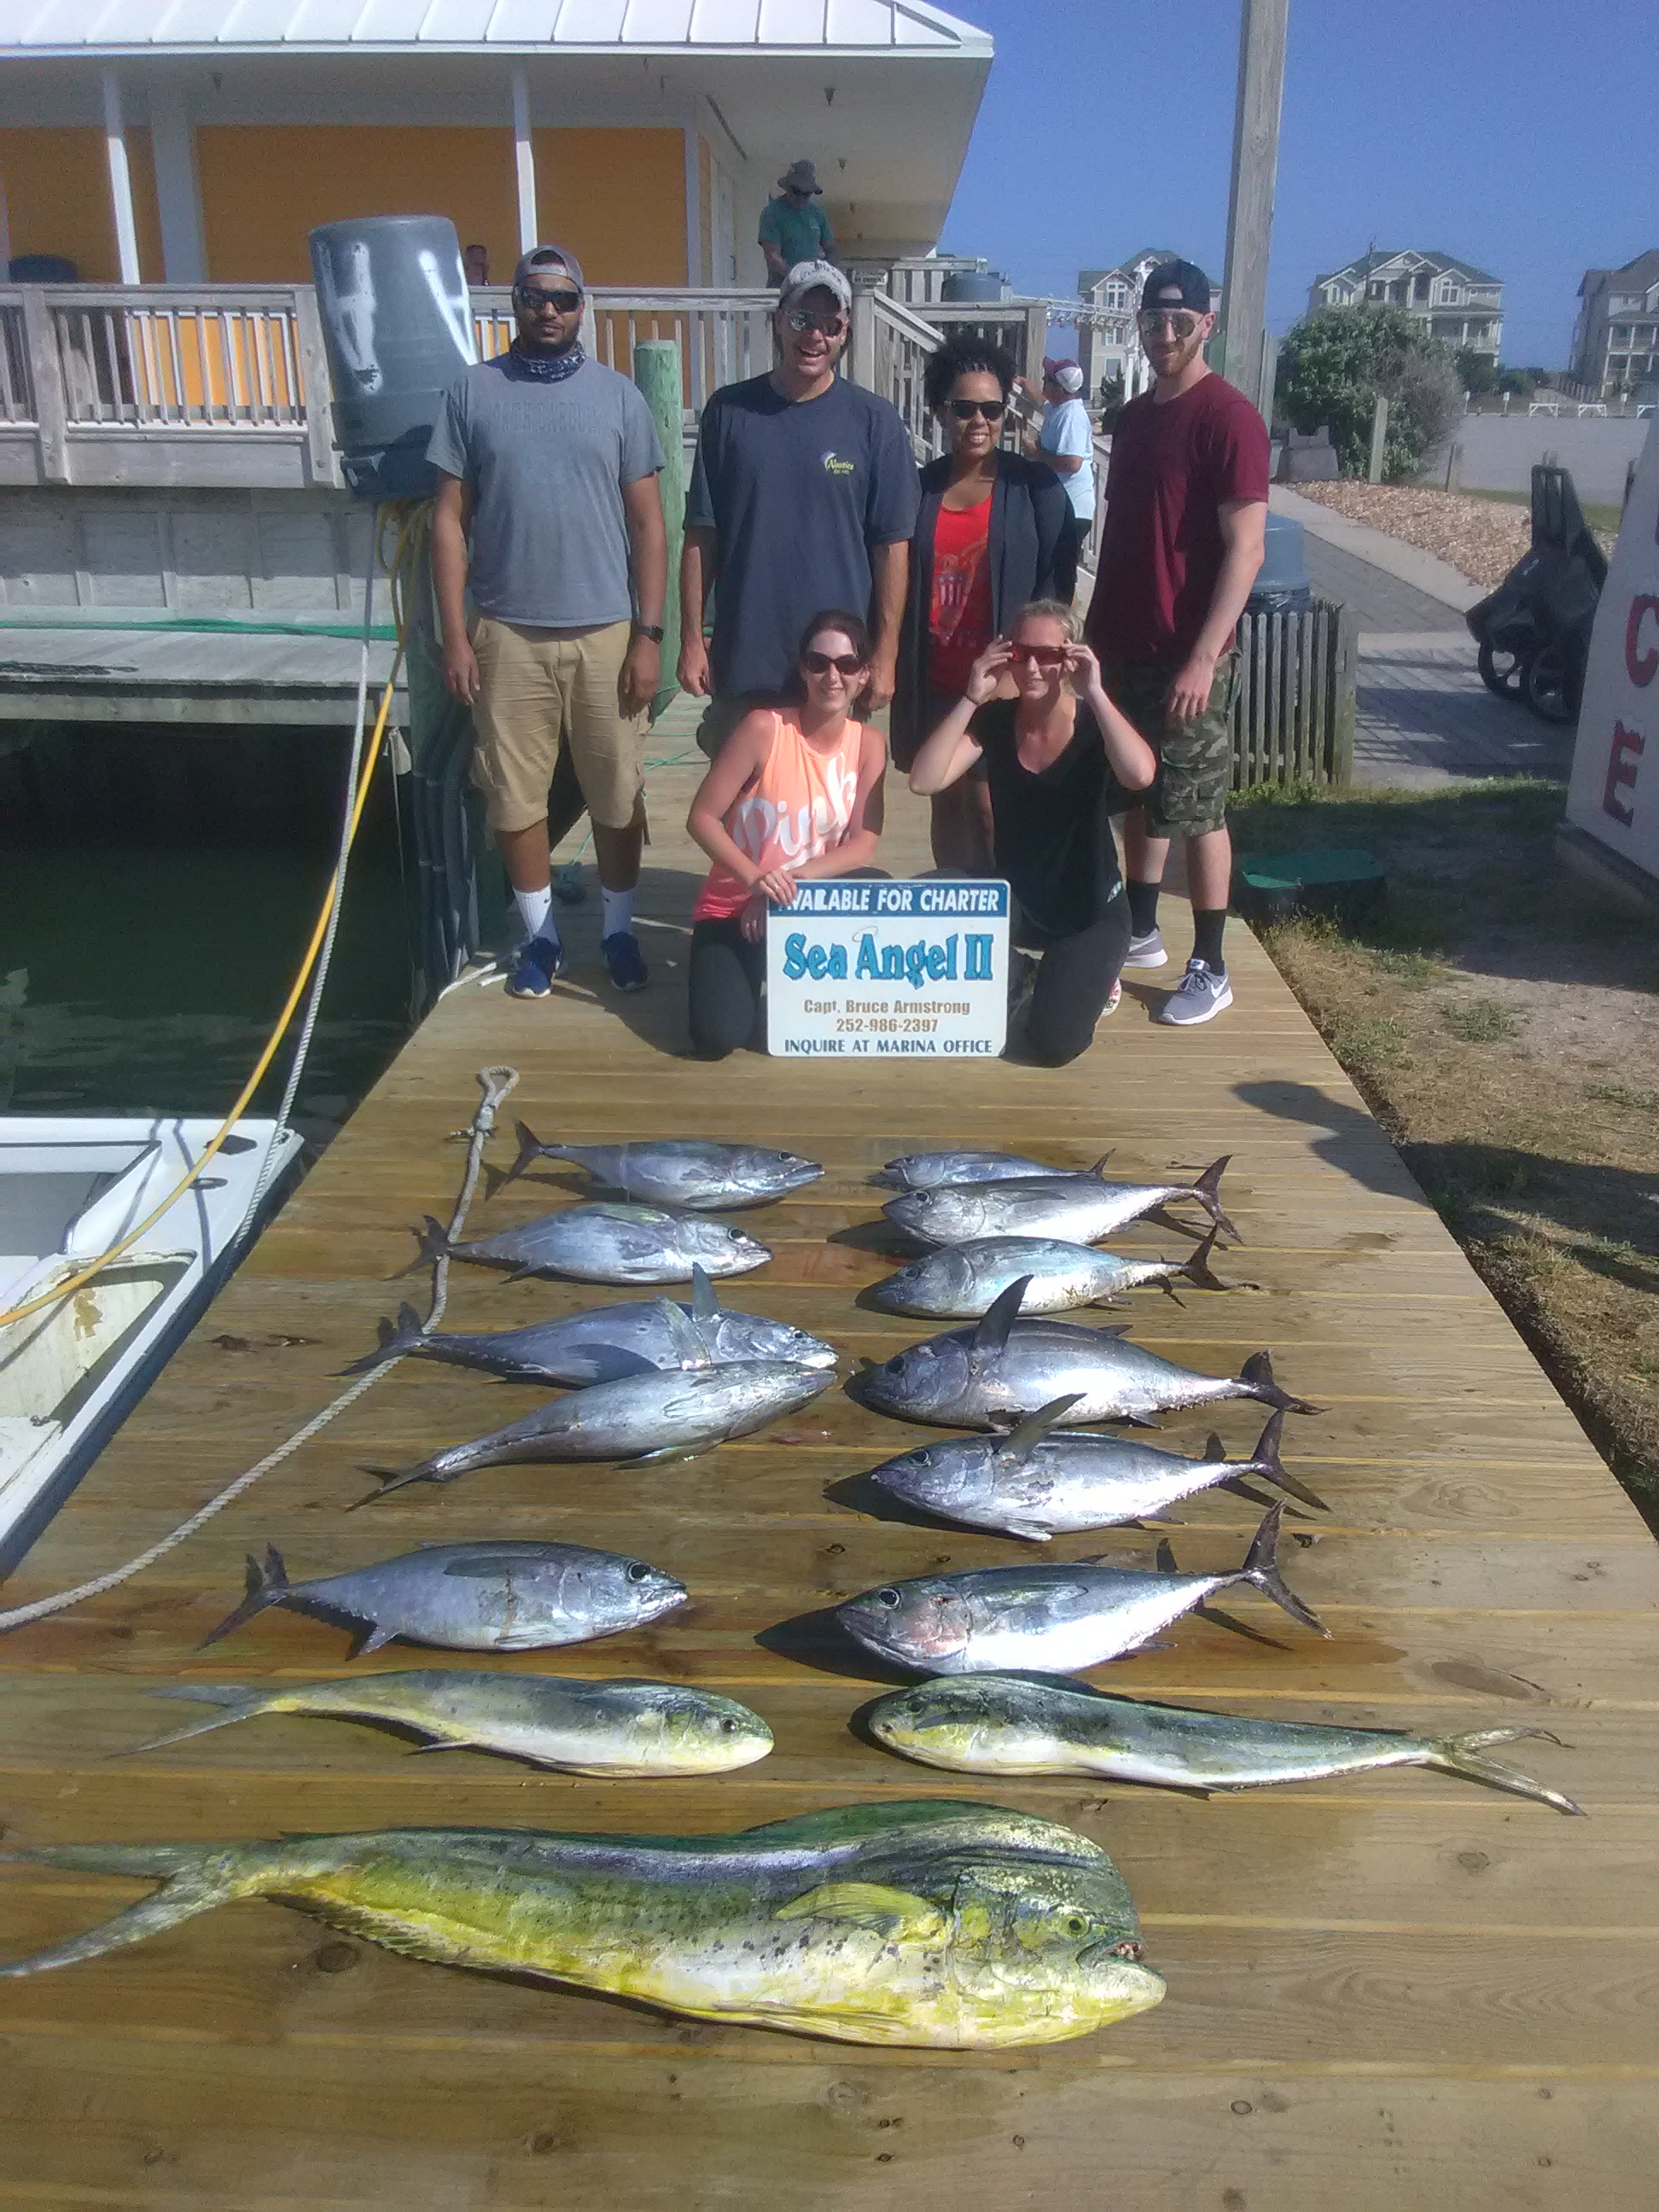 Fishing with Captain Bruce Armstrong on the Sea Angel II